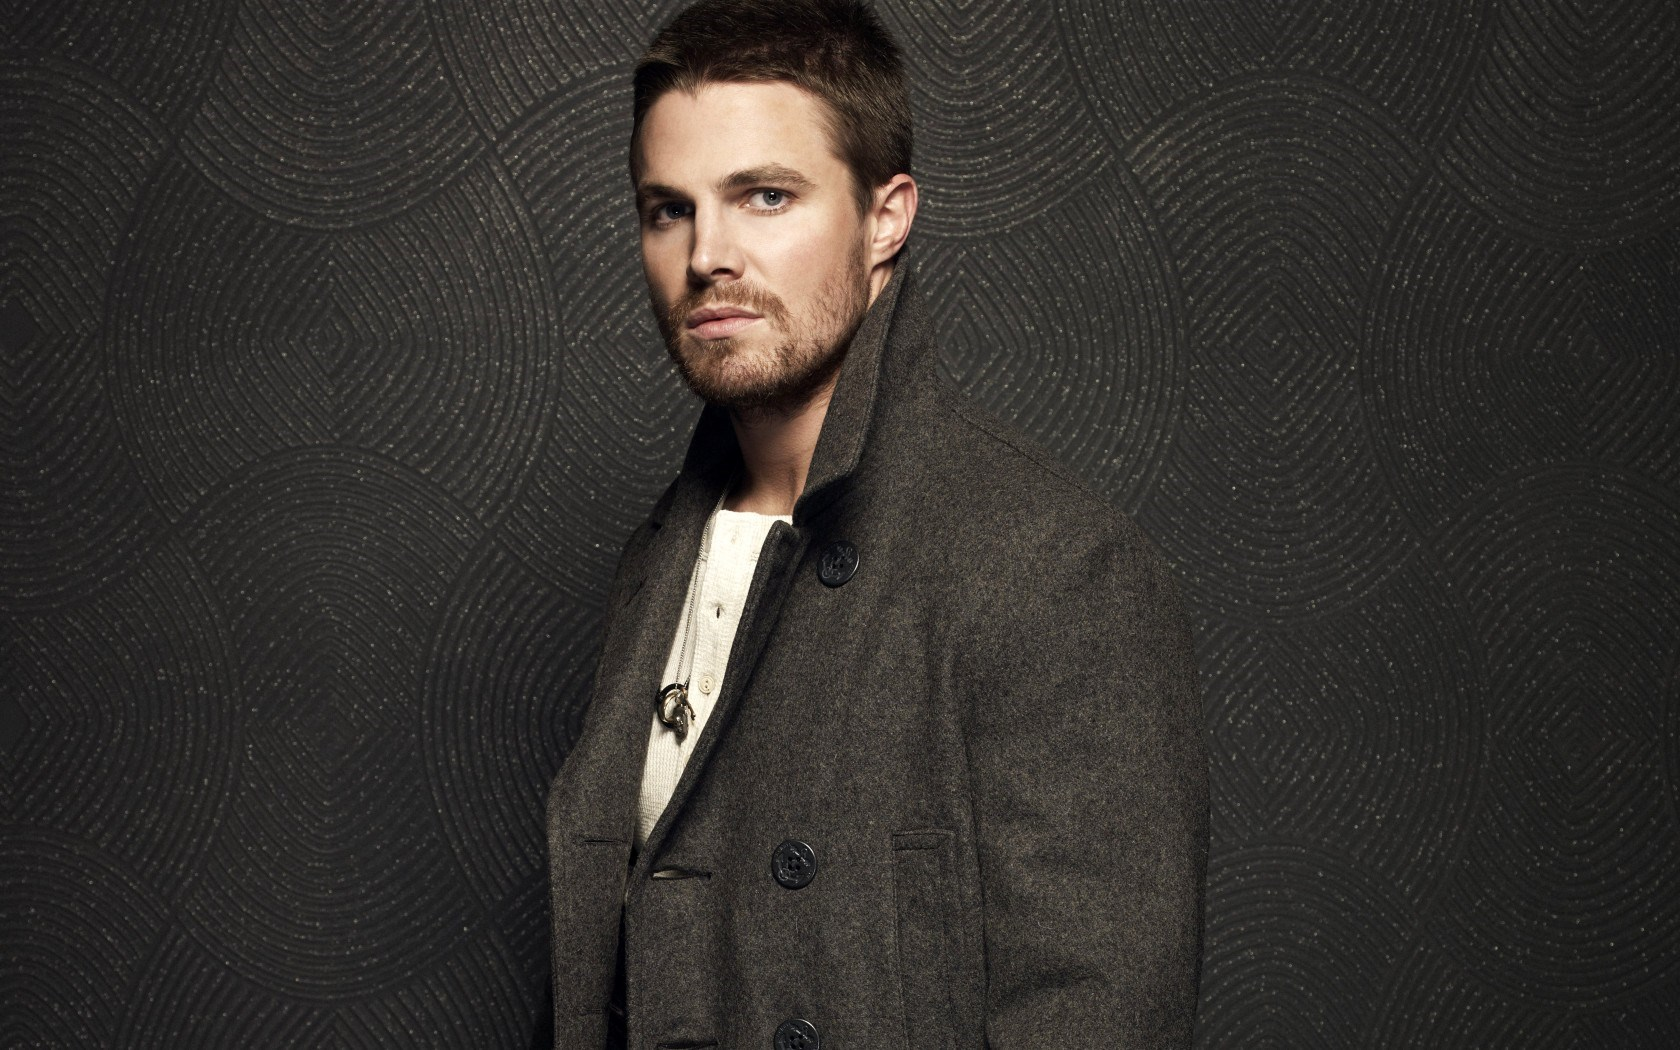 'Arrow' Star Stephen Amell Cast as Casey Jones in 'Teenage Mutant Ninja Turtles 2' - Nerdcore Movement